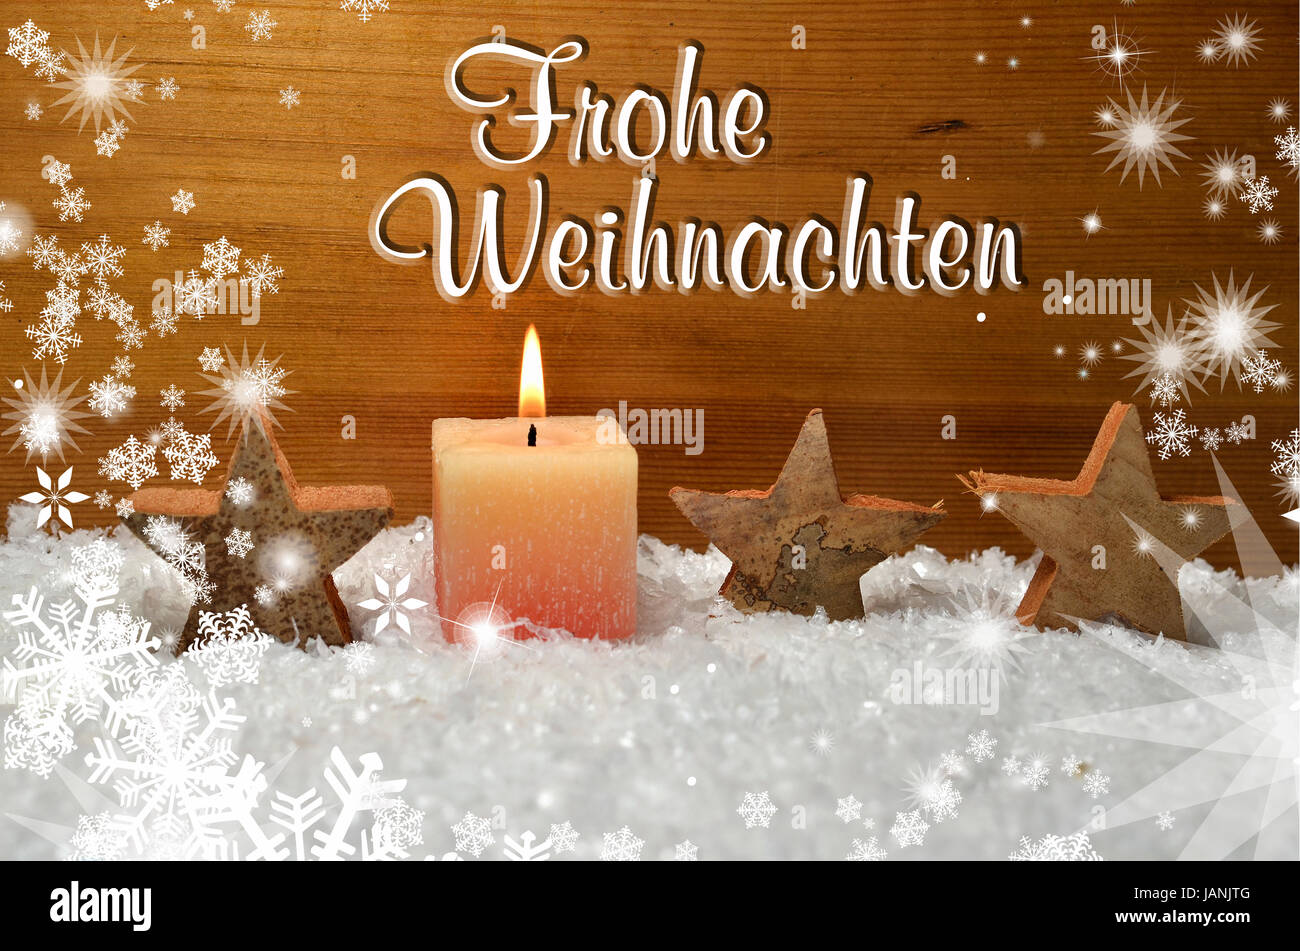 Bilder Zu Frohe Weihnachten.Frohe Weihnachten Dekoration Advent Stock Photo 144305296